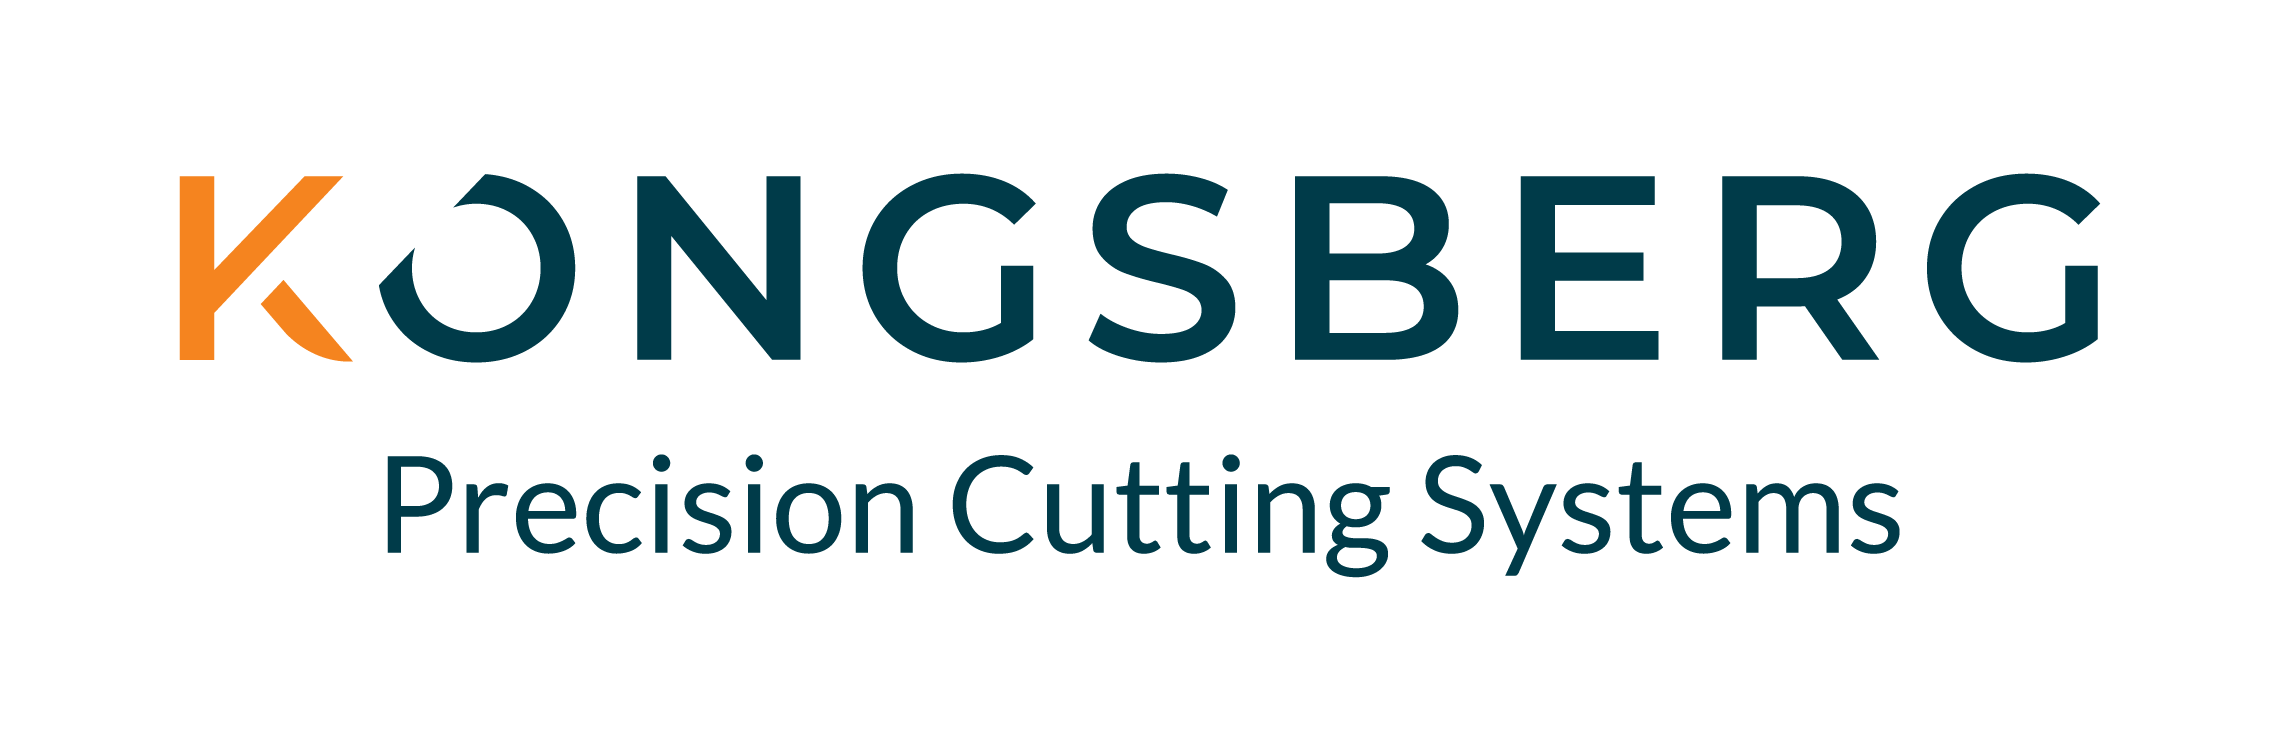 Kongsberg Precision Cutting Systems Belgium BV